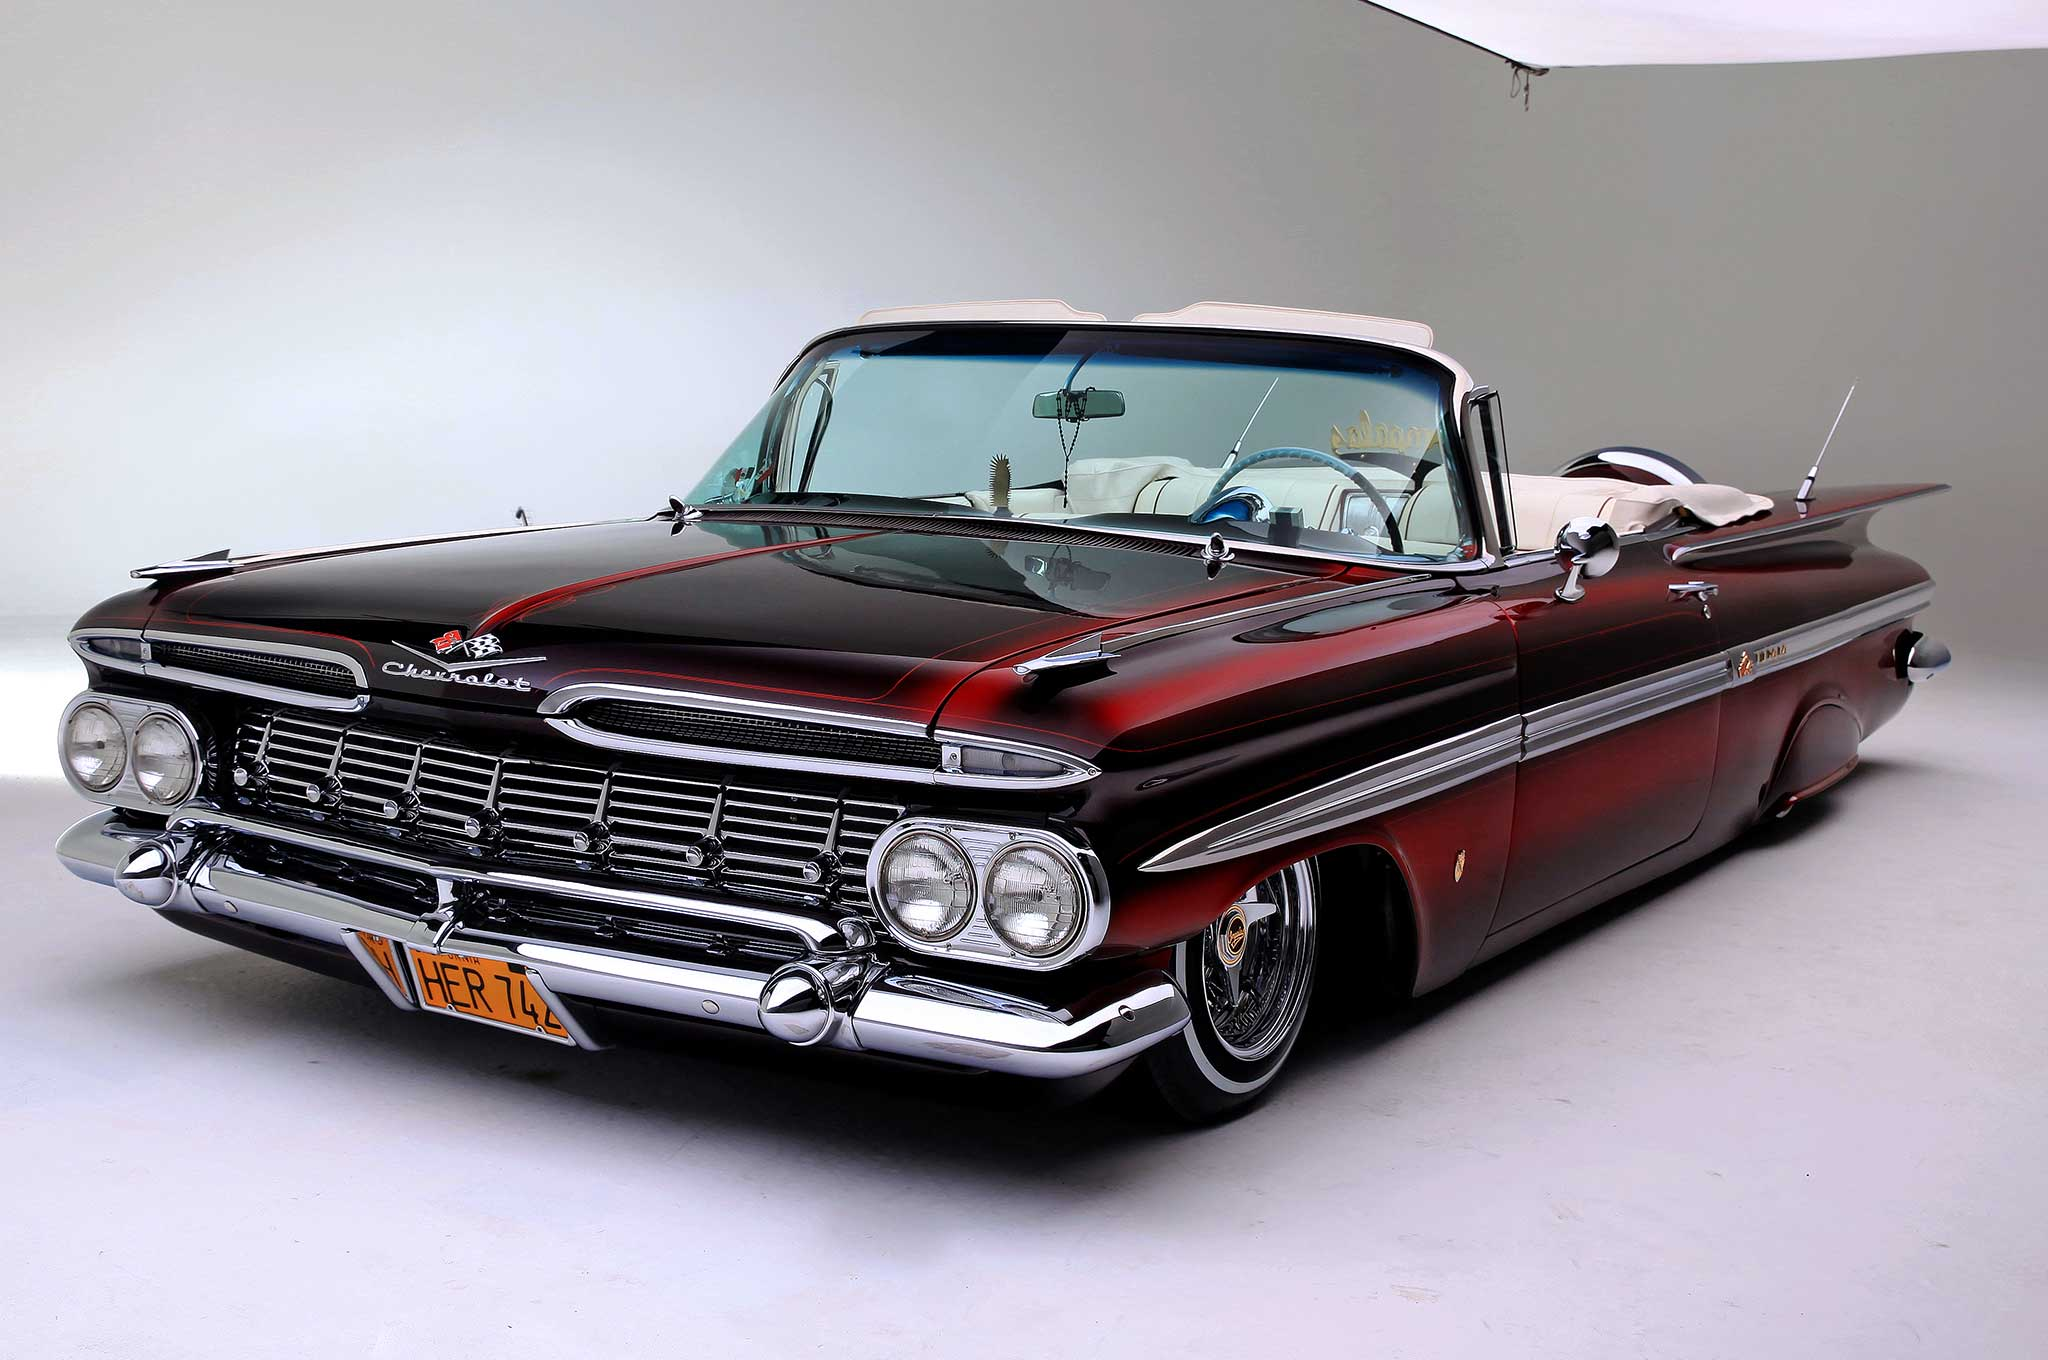 4 1959 chevrolet impala convertible hd wallpapers background images wallpaper abyss. Black Bedroom Furniture Sets. Home Design Ideas